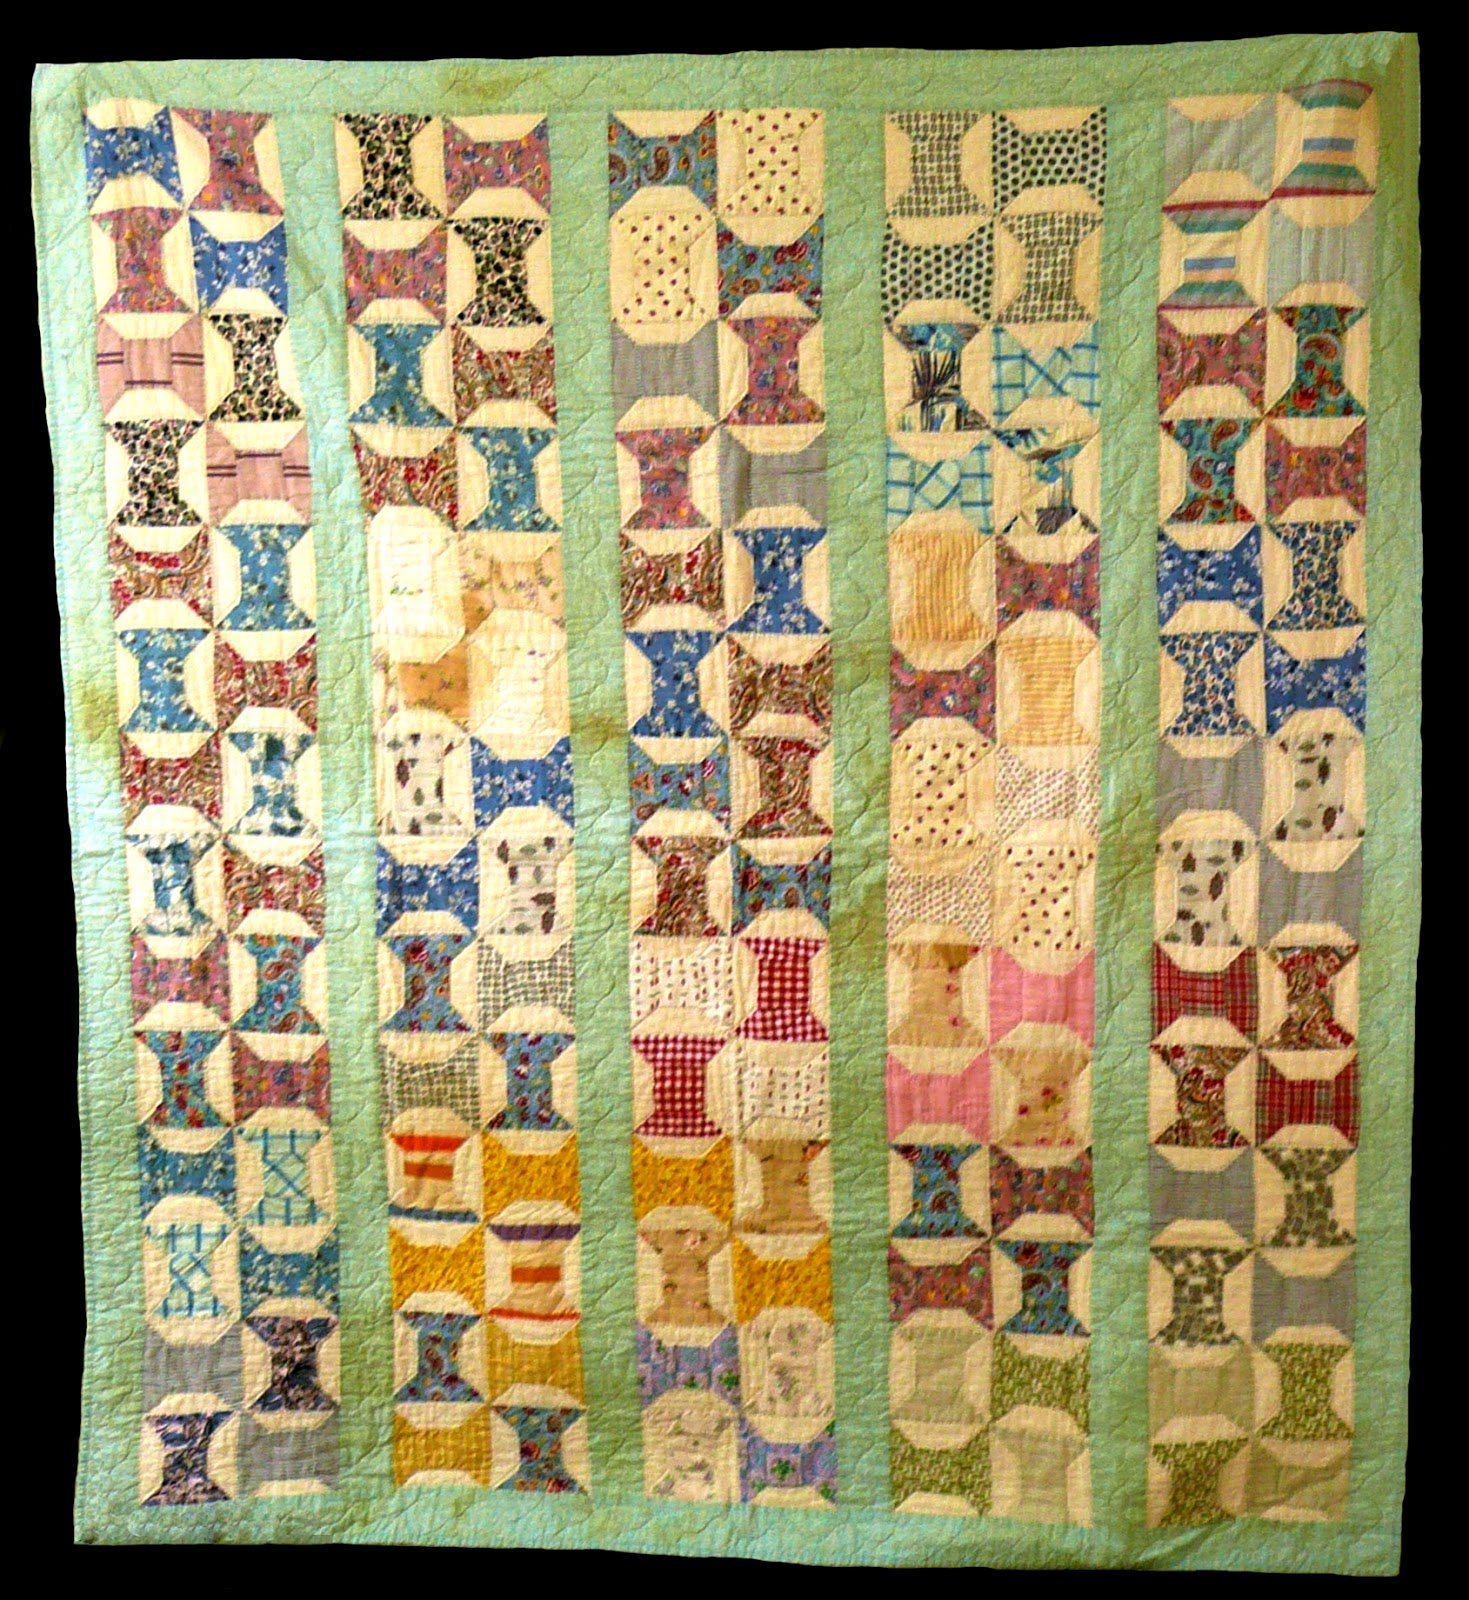 Spools Quilt Clendennen Mary Antique Spools Quilt Quilts